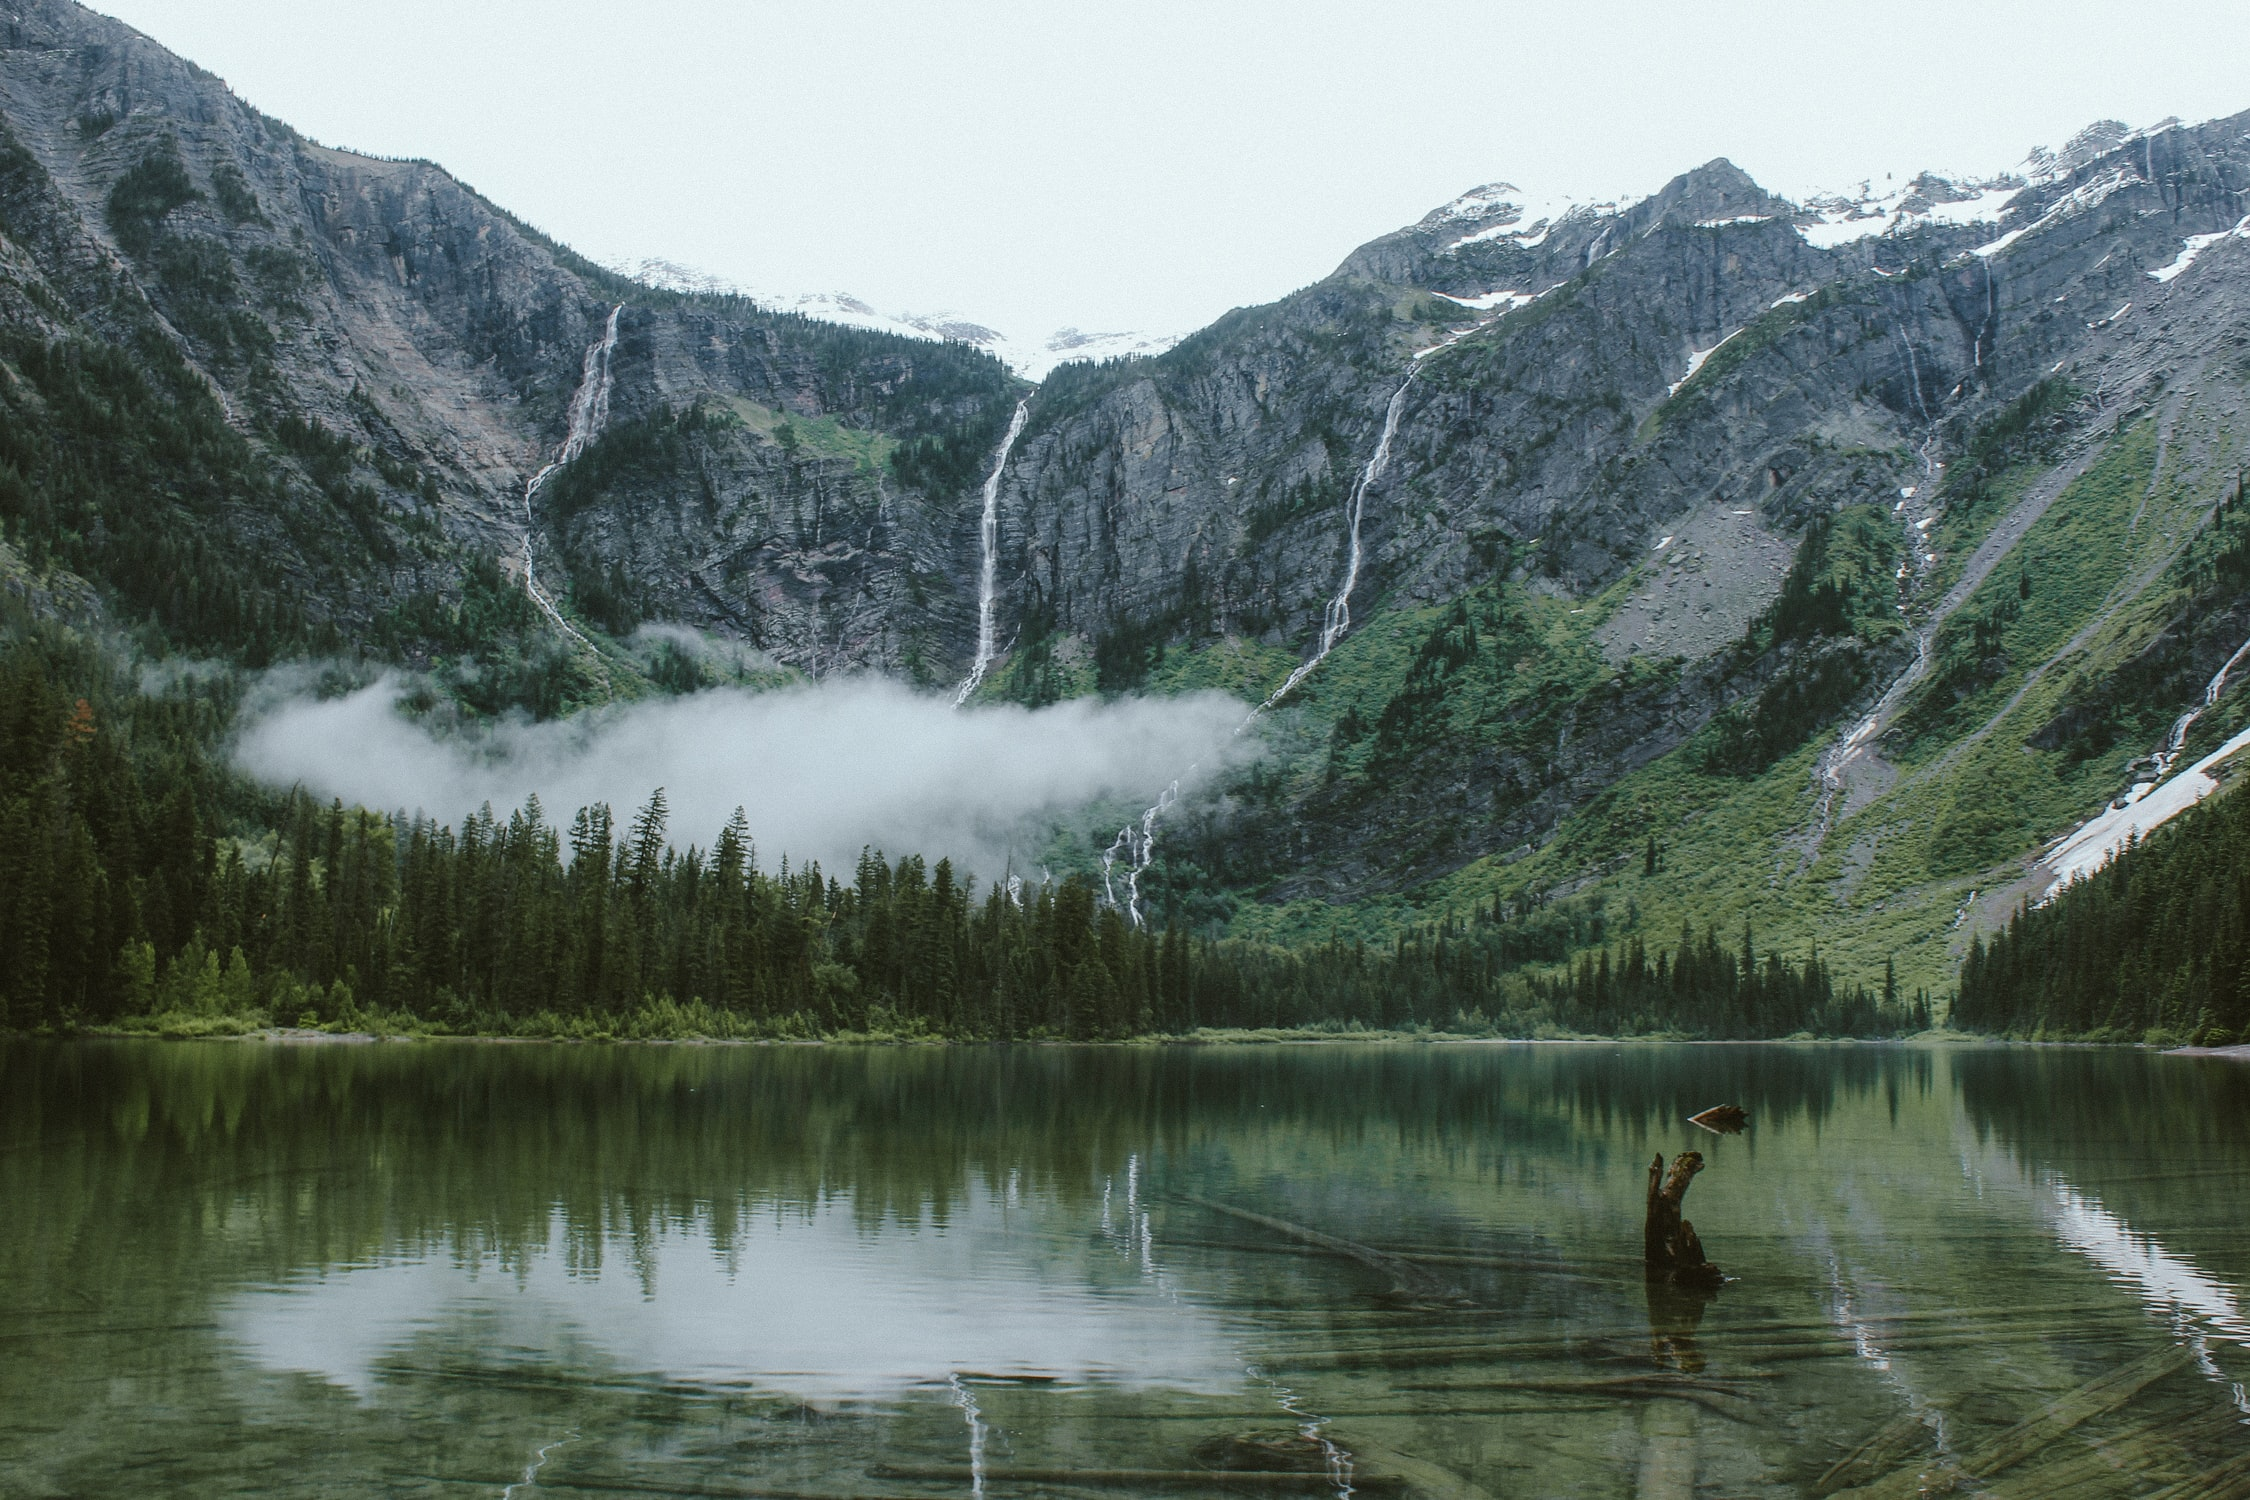 The clear surface of Avalanche Lake in a mountain basin